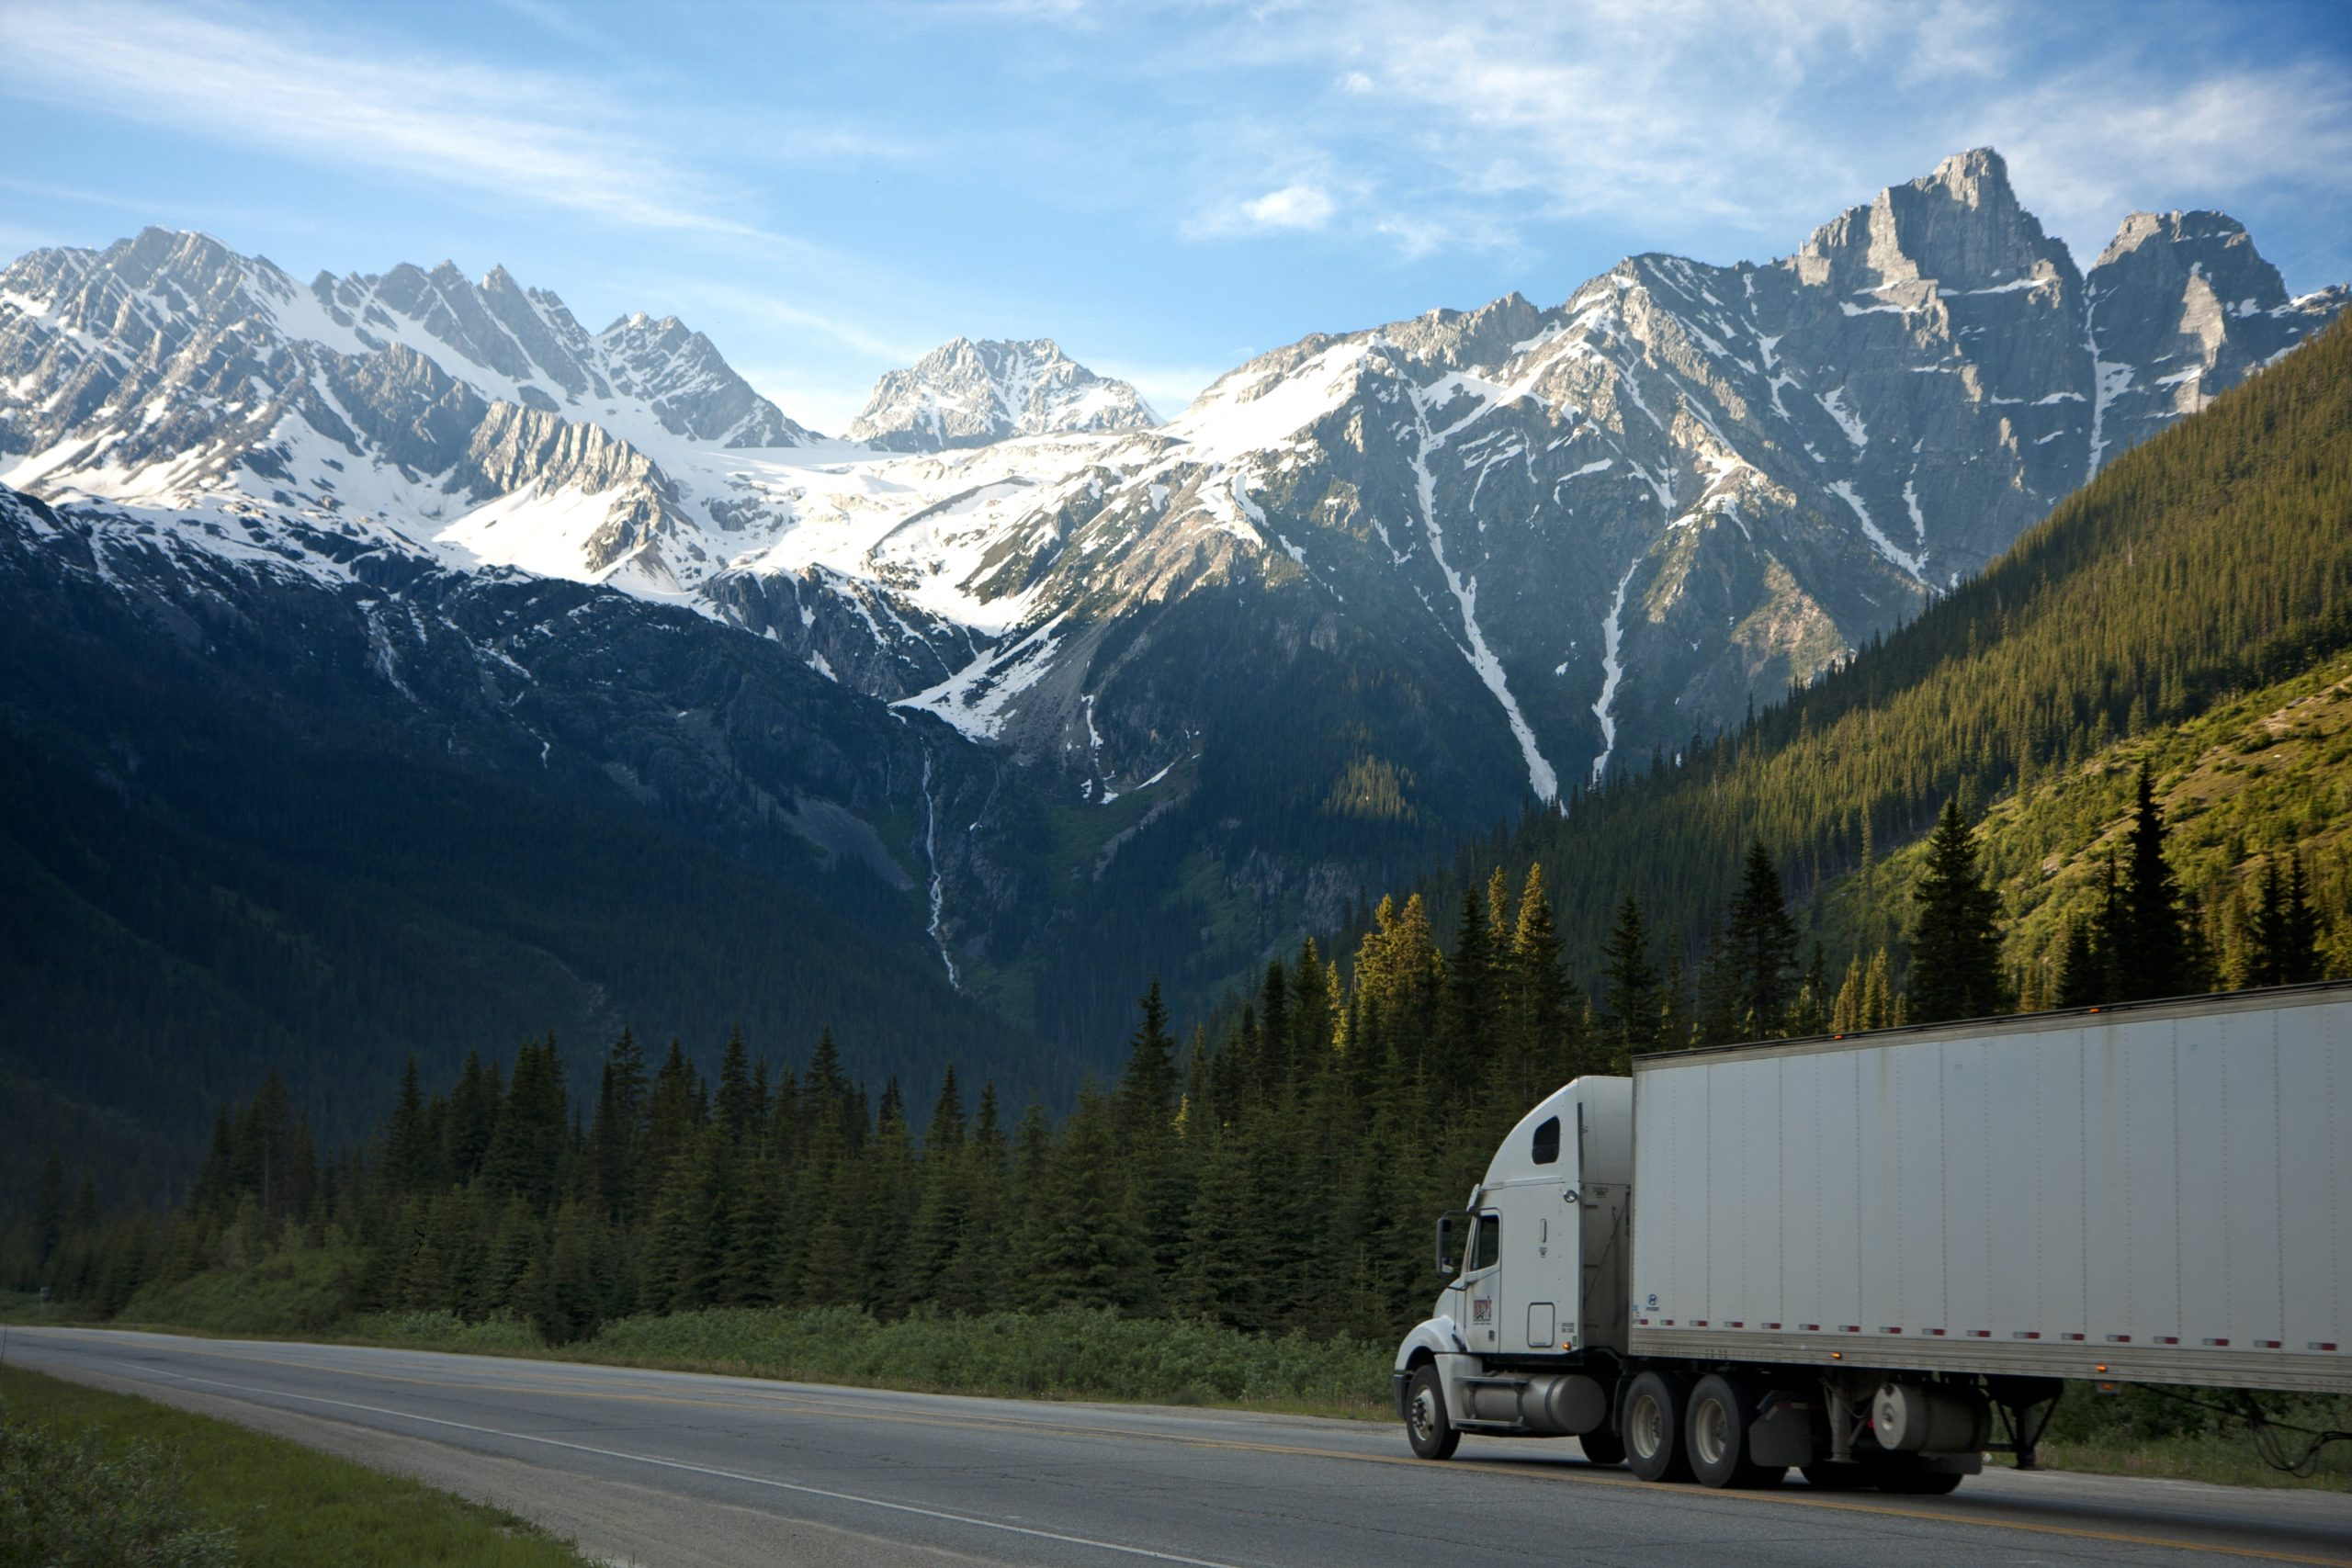 White truck driving with snow capped mountains in the background